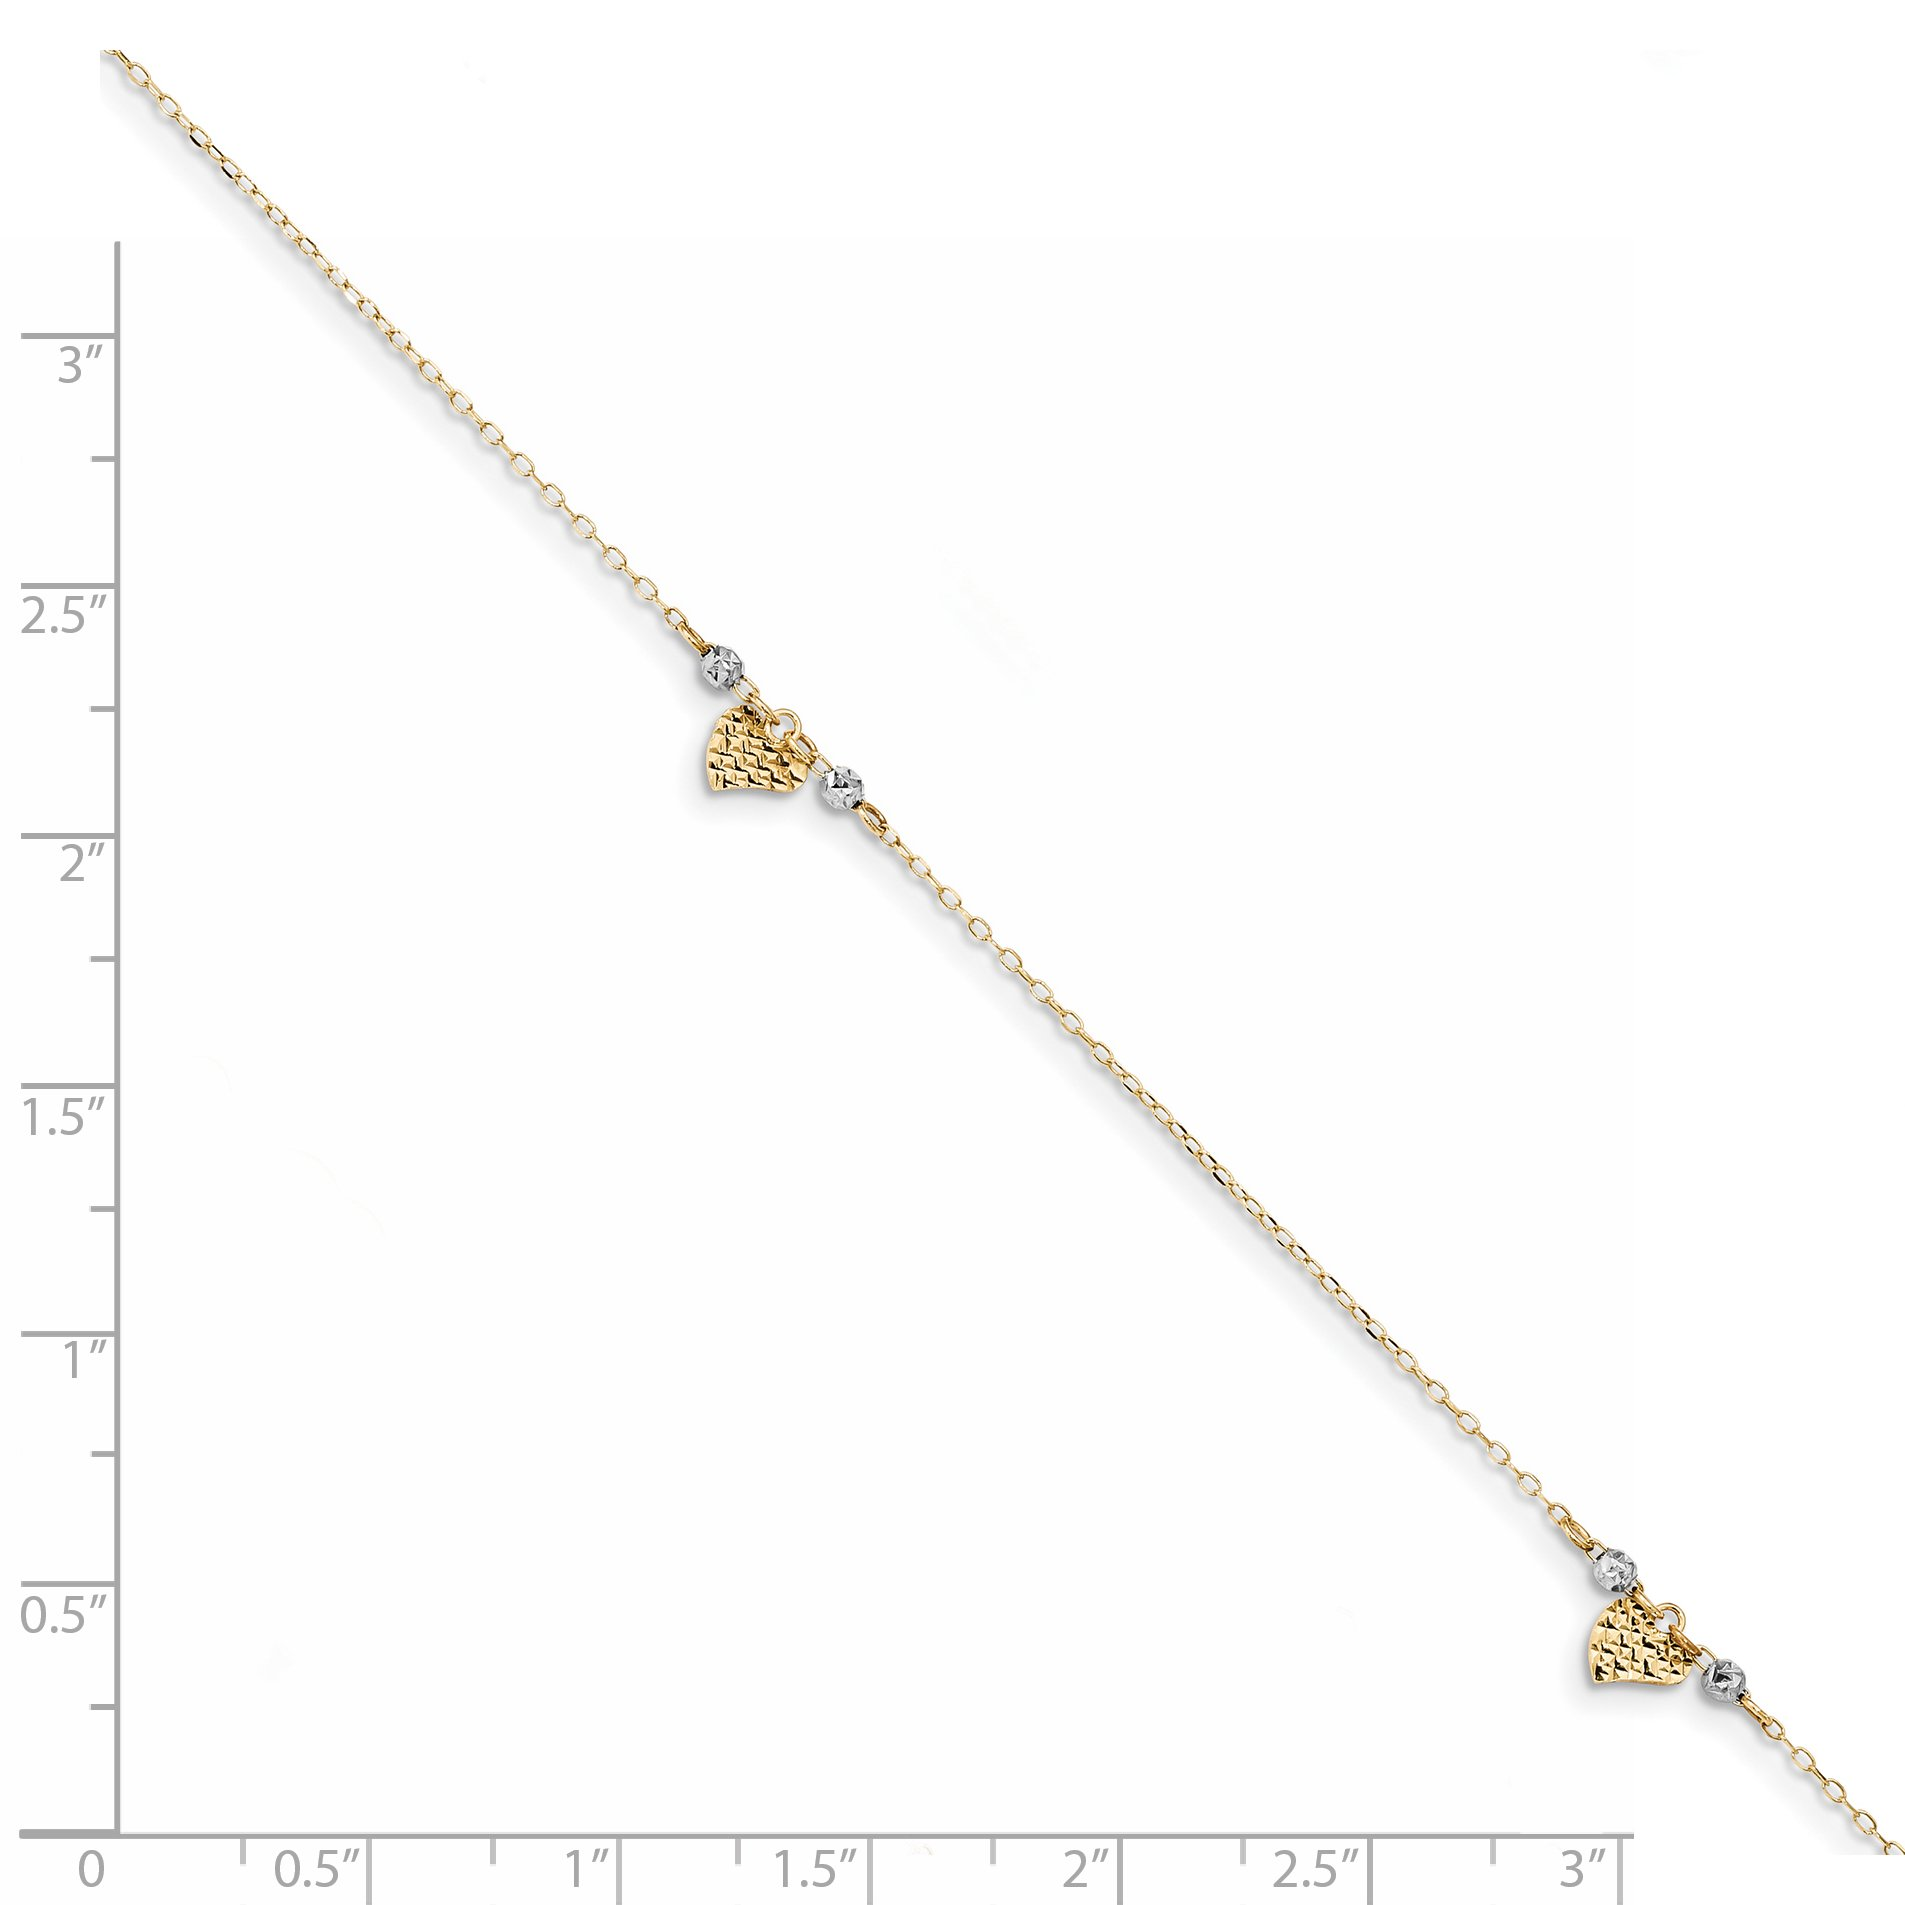 ICE CARATS 14k Two Tone Yellow Gold Heart Beads 1in. Adjustable Chain Plus Size Extender Anklet Ankle Beach Bracelet Fine Jewelry Gift Set For Women Heart by ICE CARATS (Image #2)